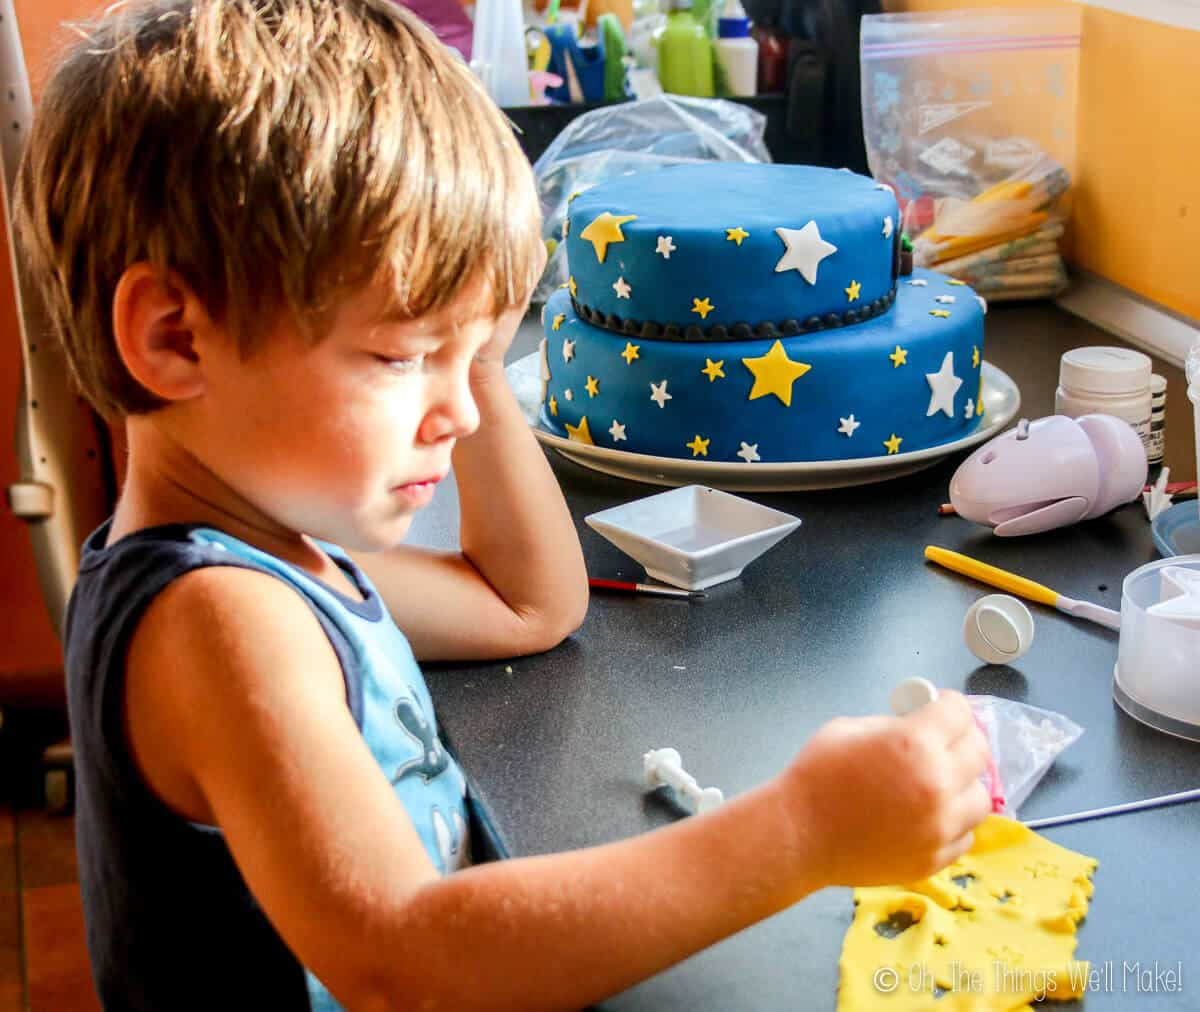 A young boy cutting out stars with a stamp on a piece of yellow fondant.